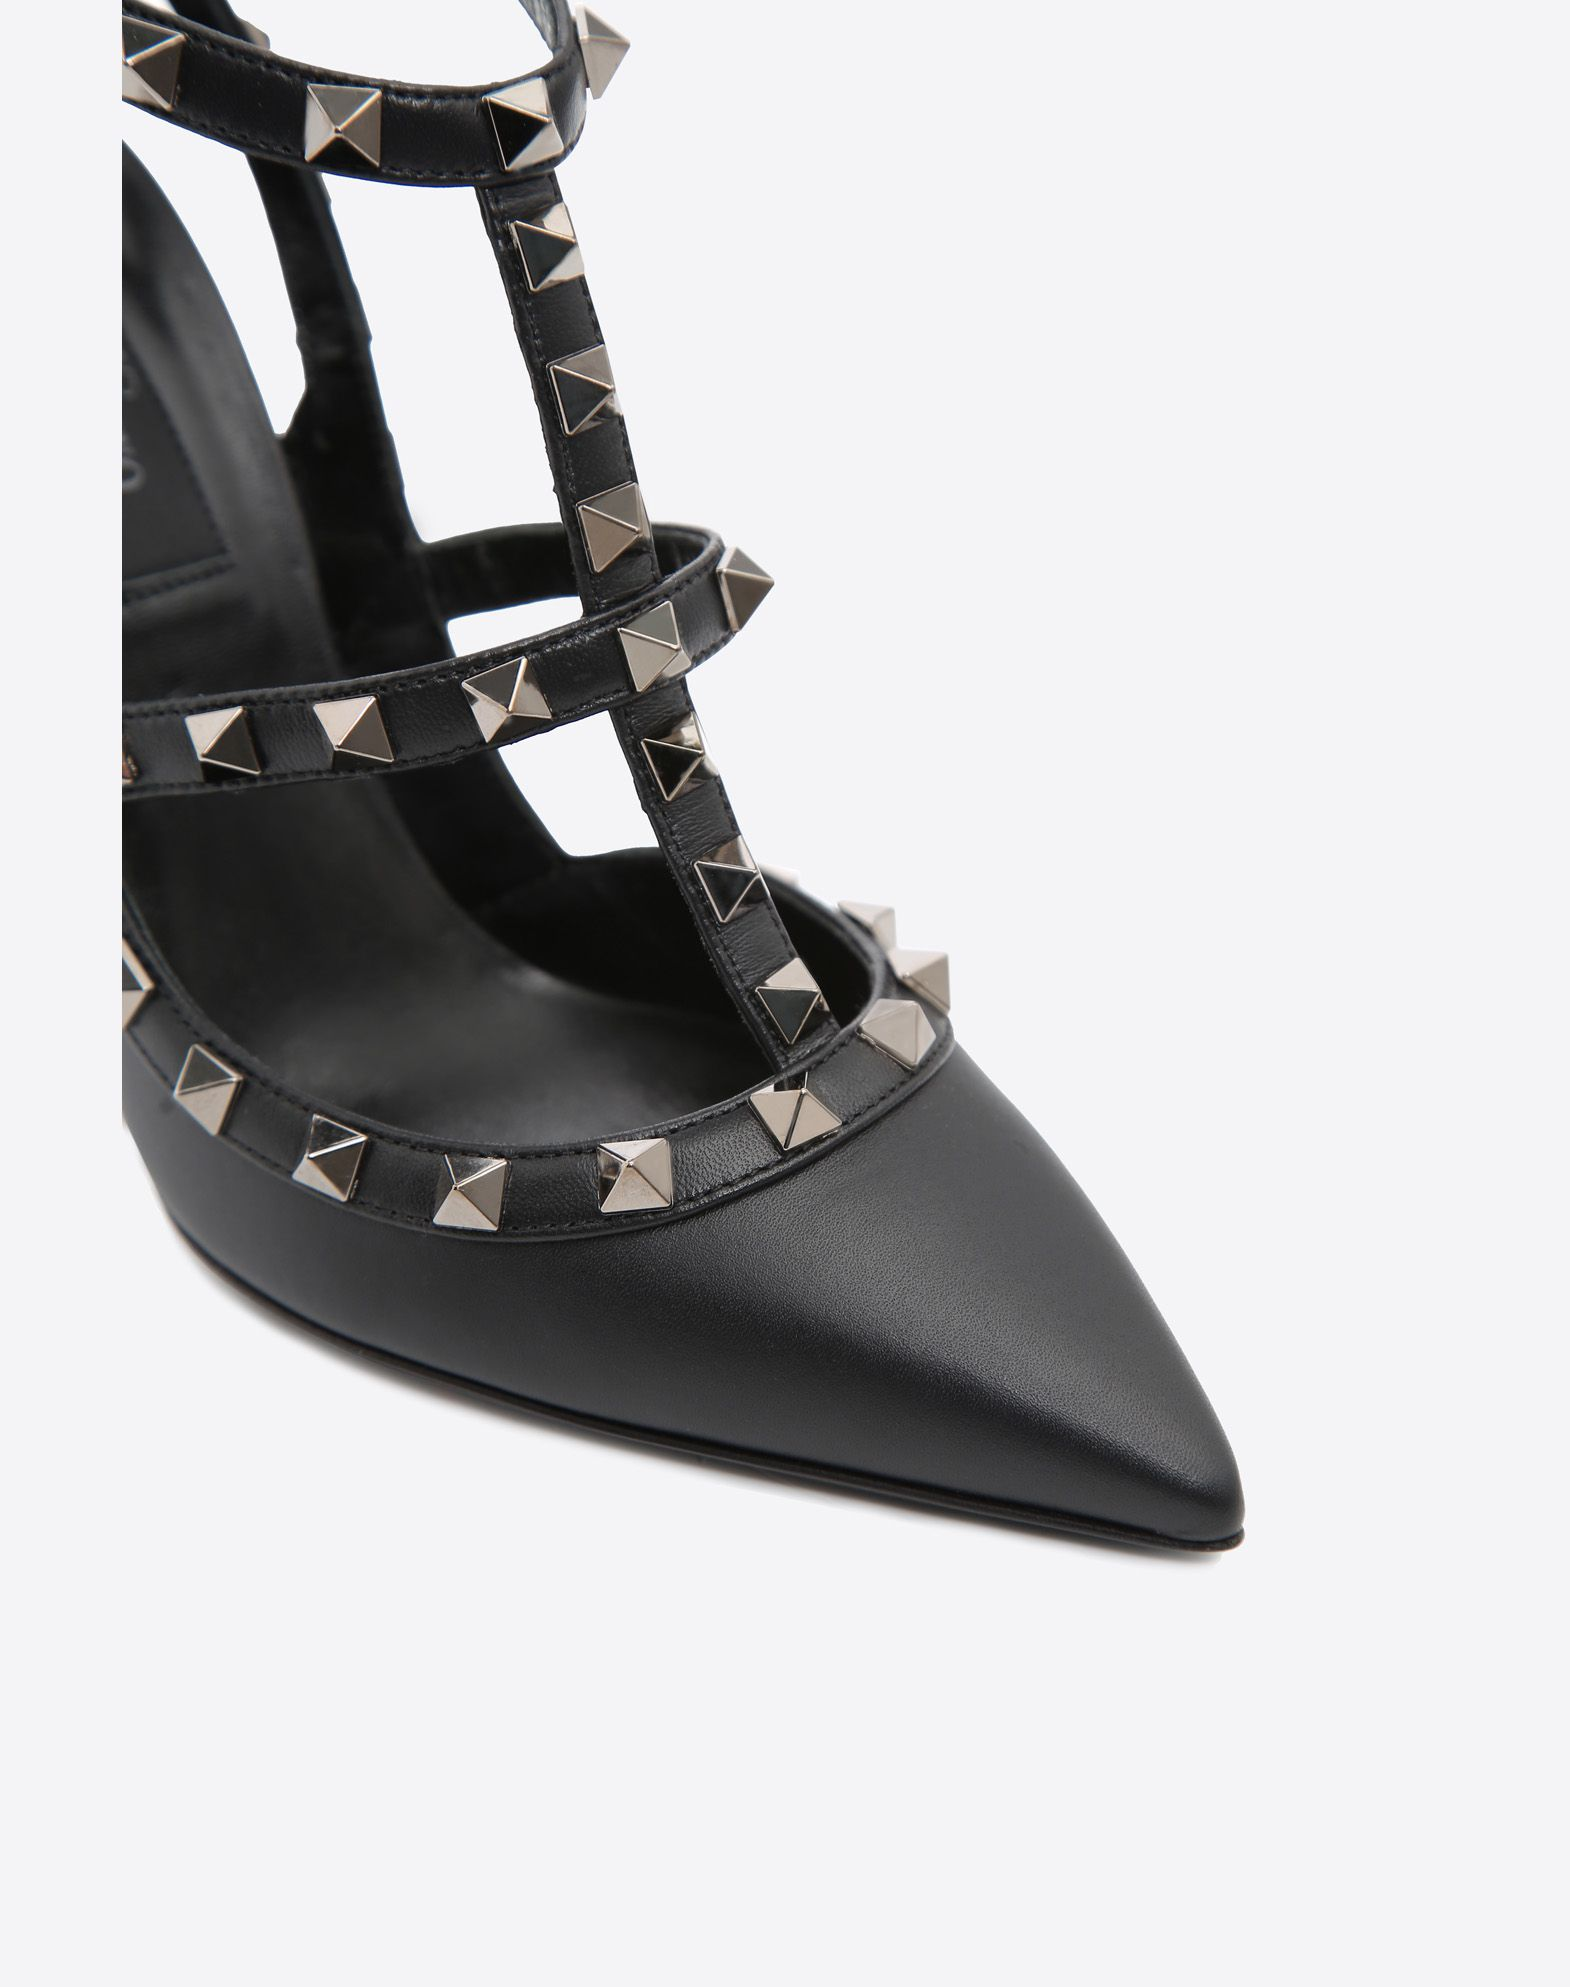 VALENTINO Solid color Metal Applications Buckling ankle strap closure  11151391xm